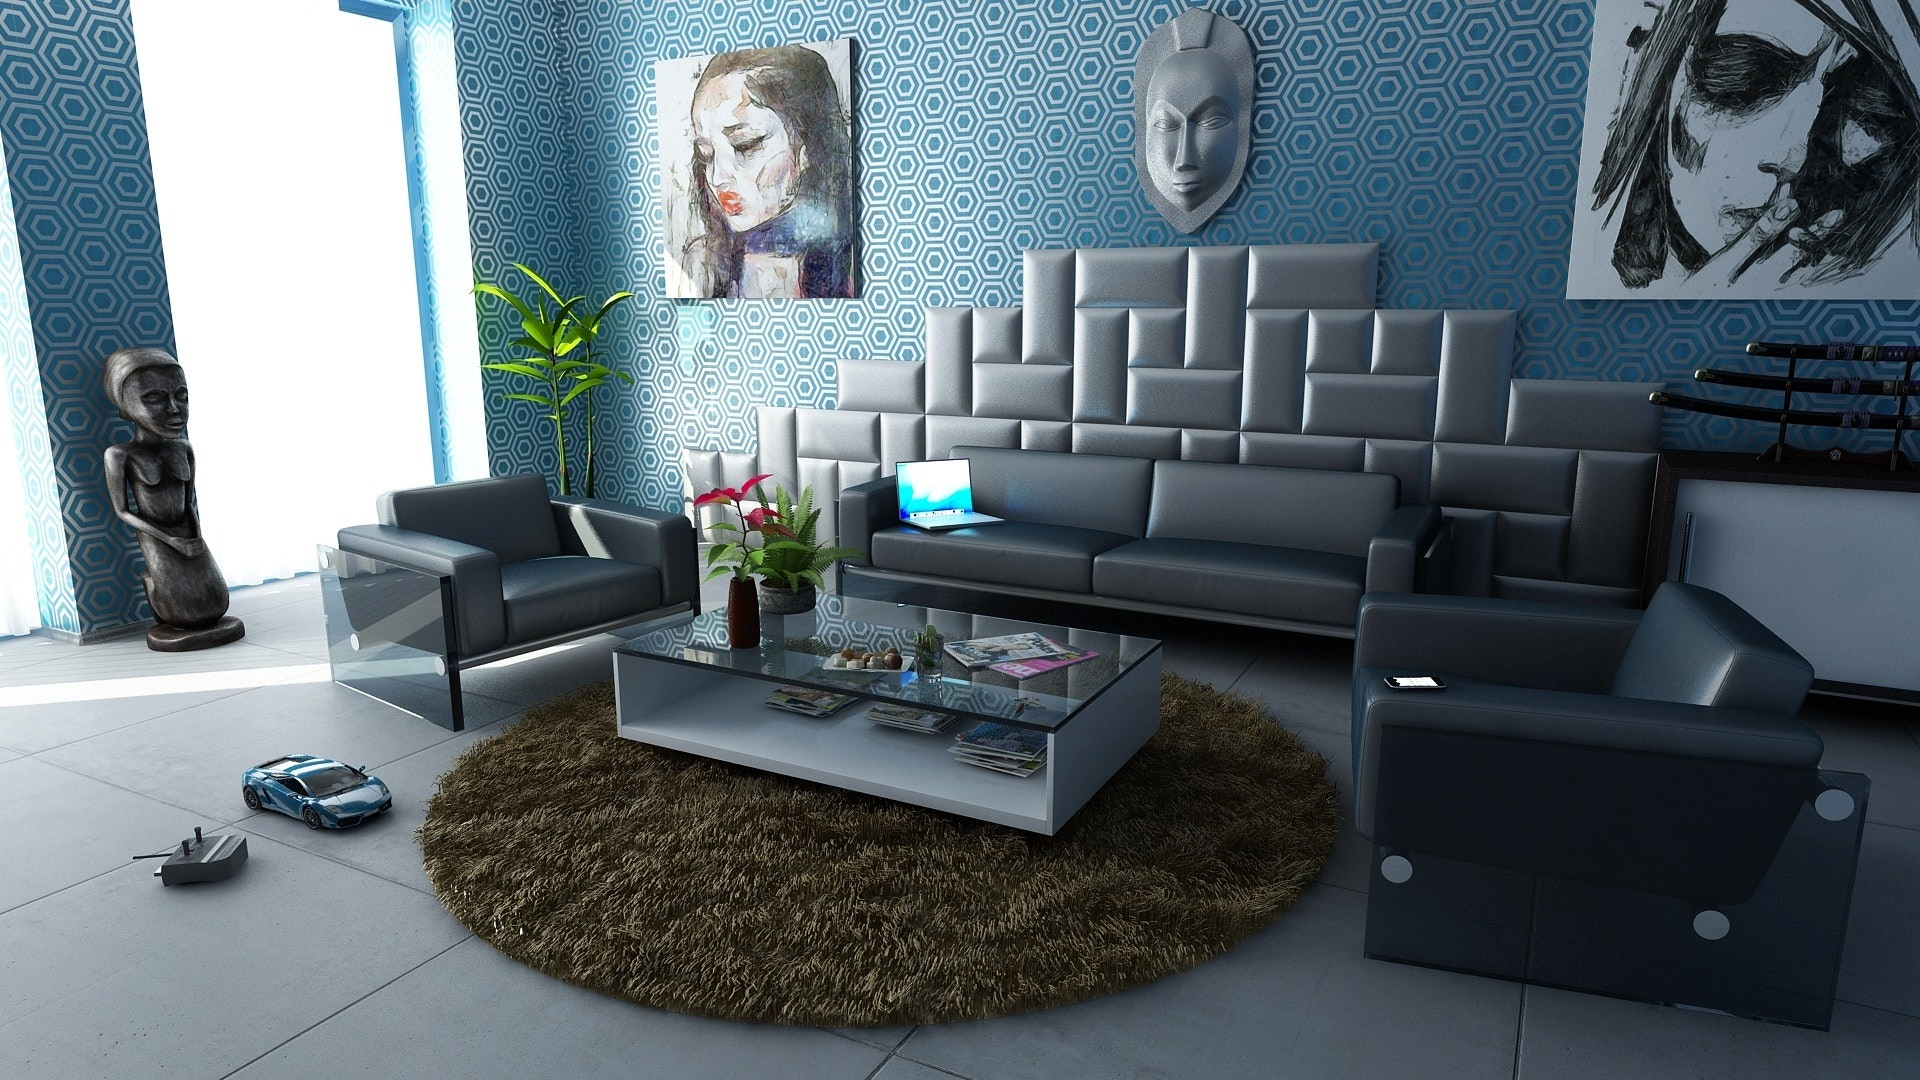 apartment-architecture-armchair-271805